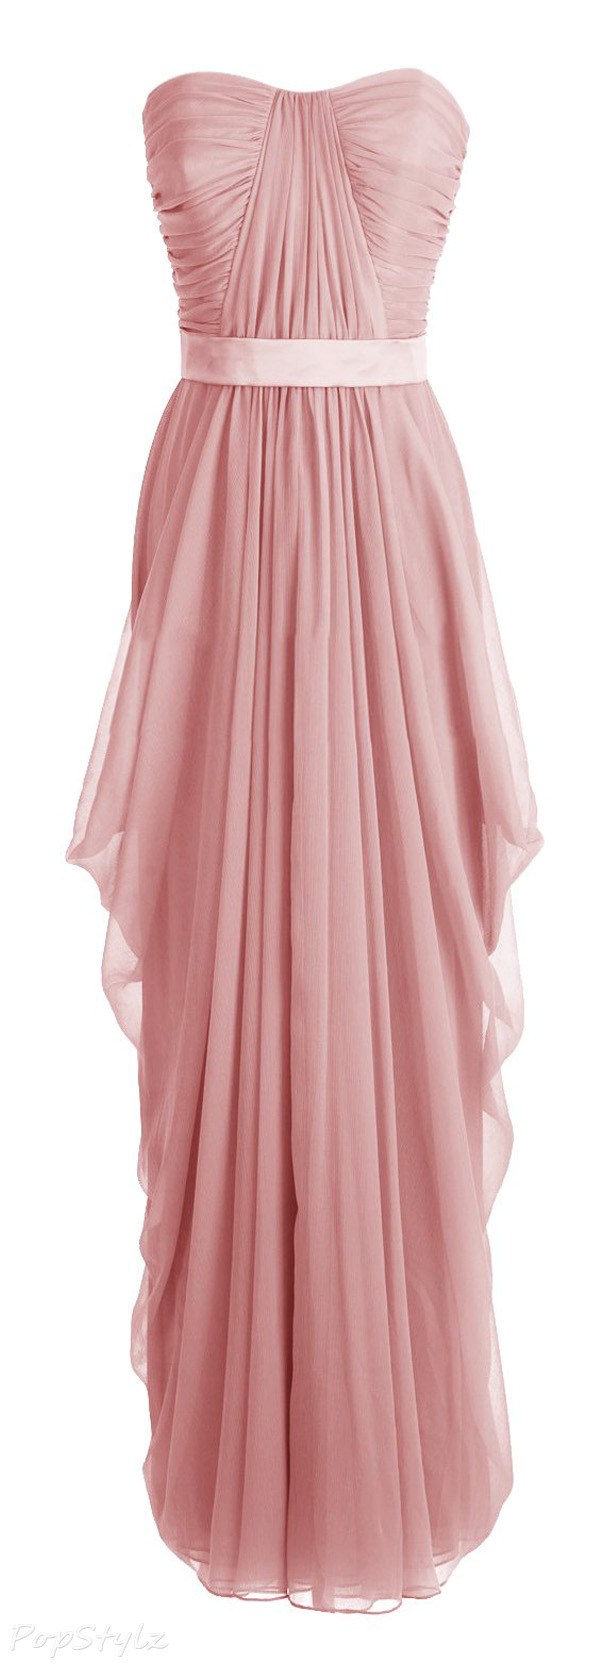 Diyouth Sweetheart Formal Strapless Long Gown